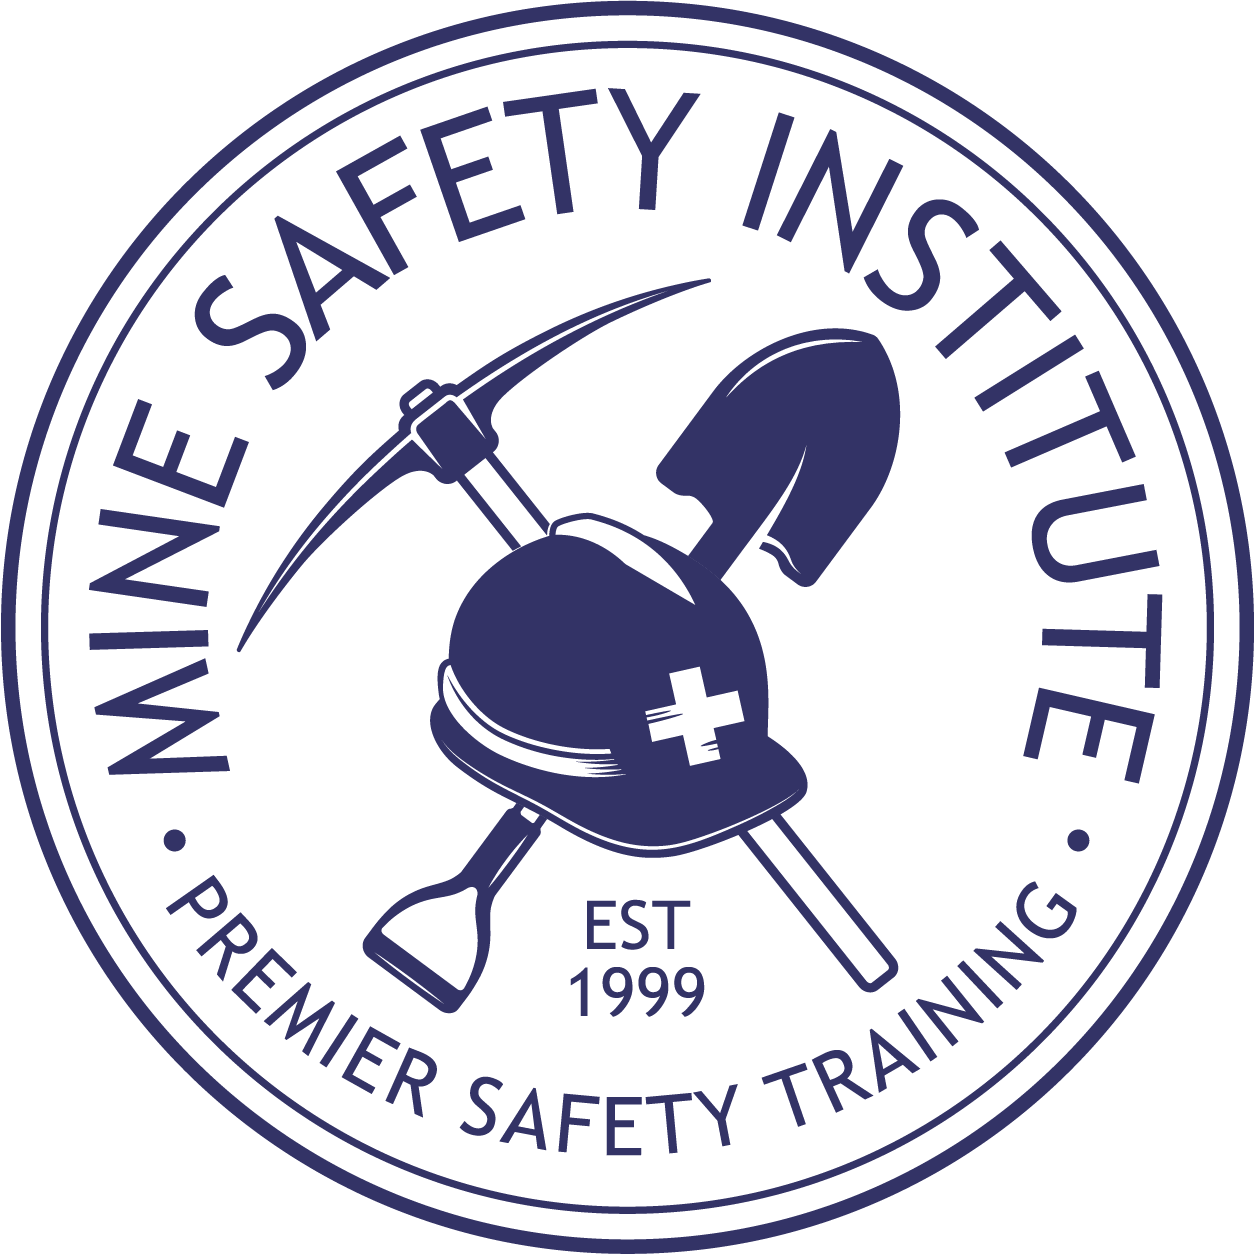 Mining drawing mines safety. Training products cssga minesafetyinstitute